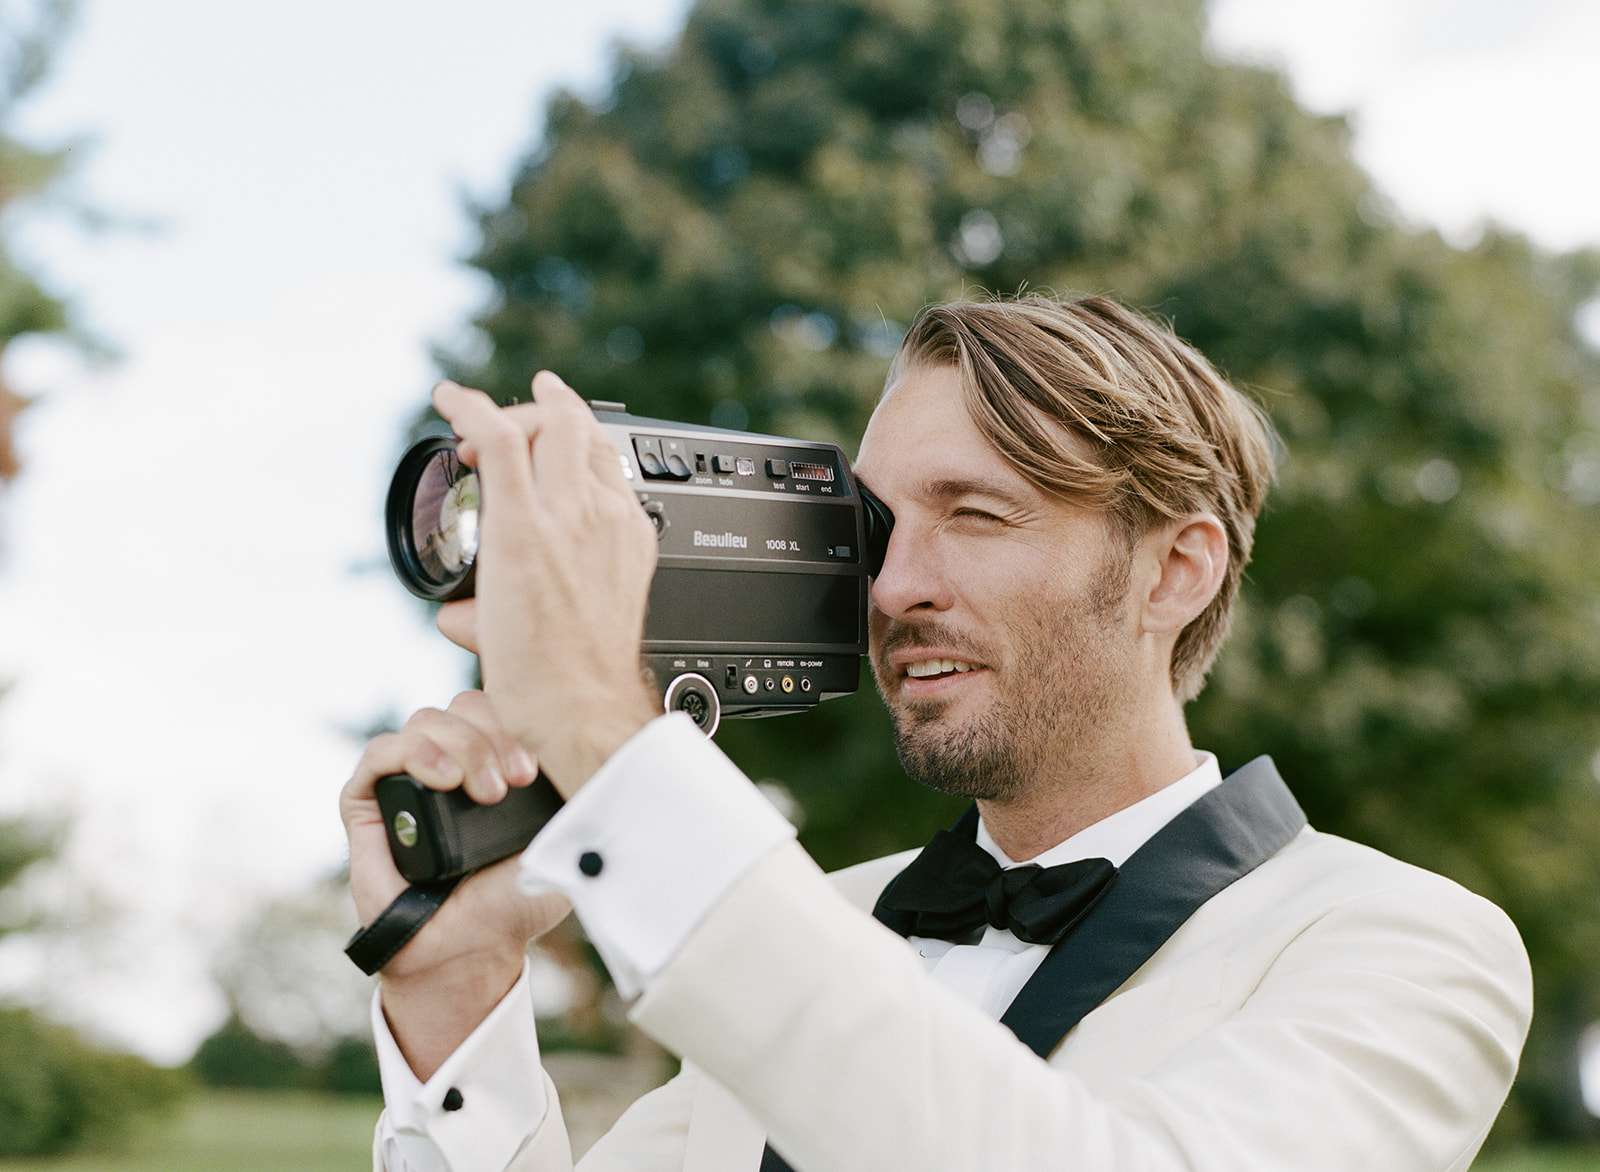 The groom with a Super 8 camera